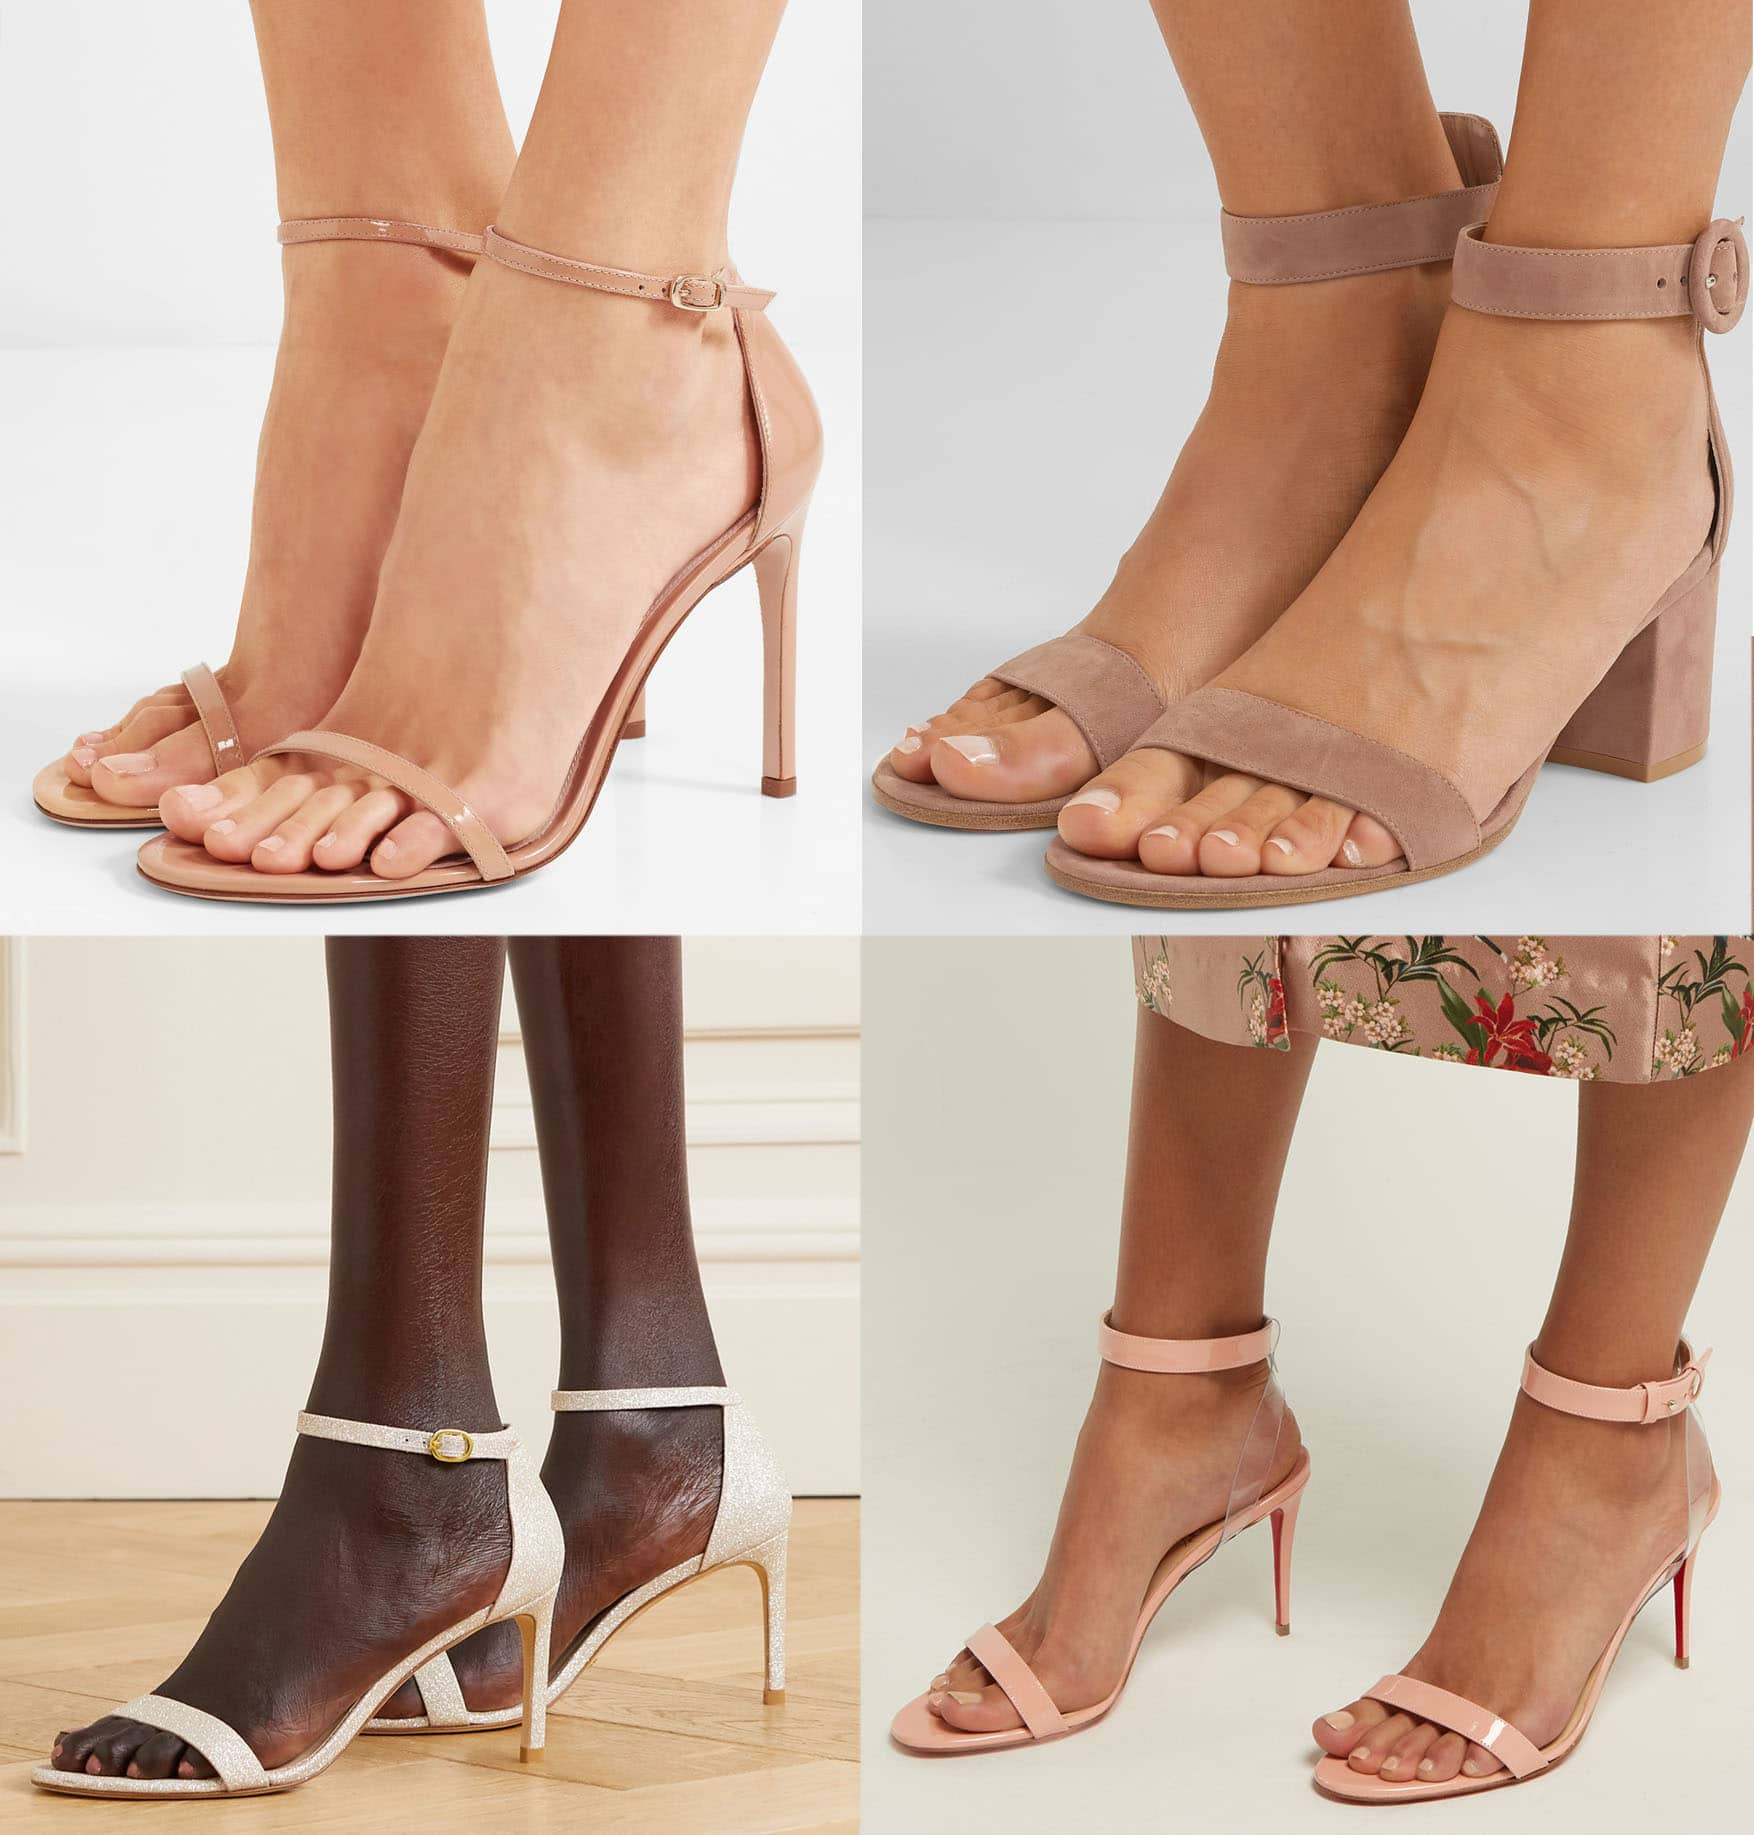 Choose ankle-strap sandals with leather fabric straps that you can punch holes into for any needed adjustments